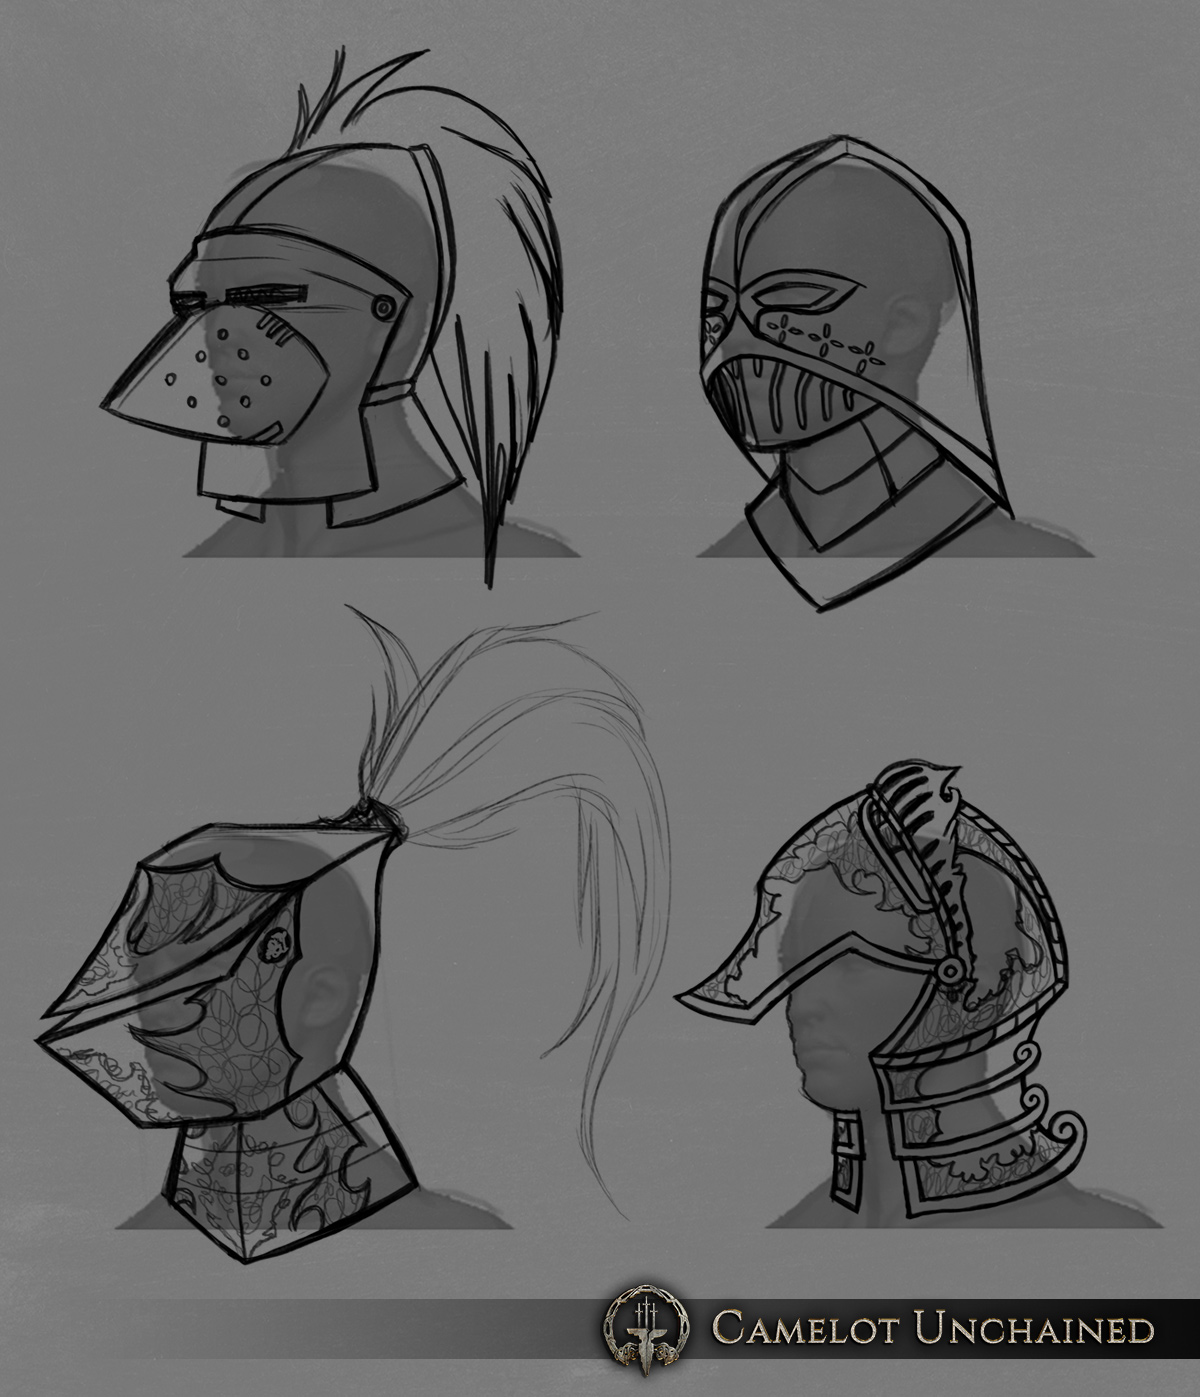 bd30c Camelot Unchained armor01 helmets Afternoon Update – Friday, August 28th, 2015